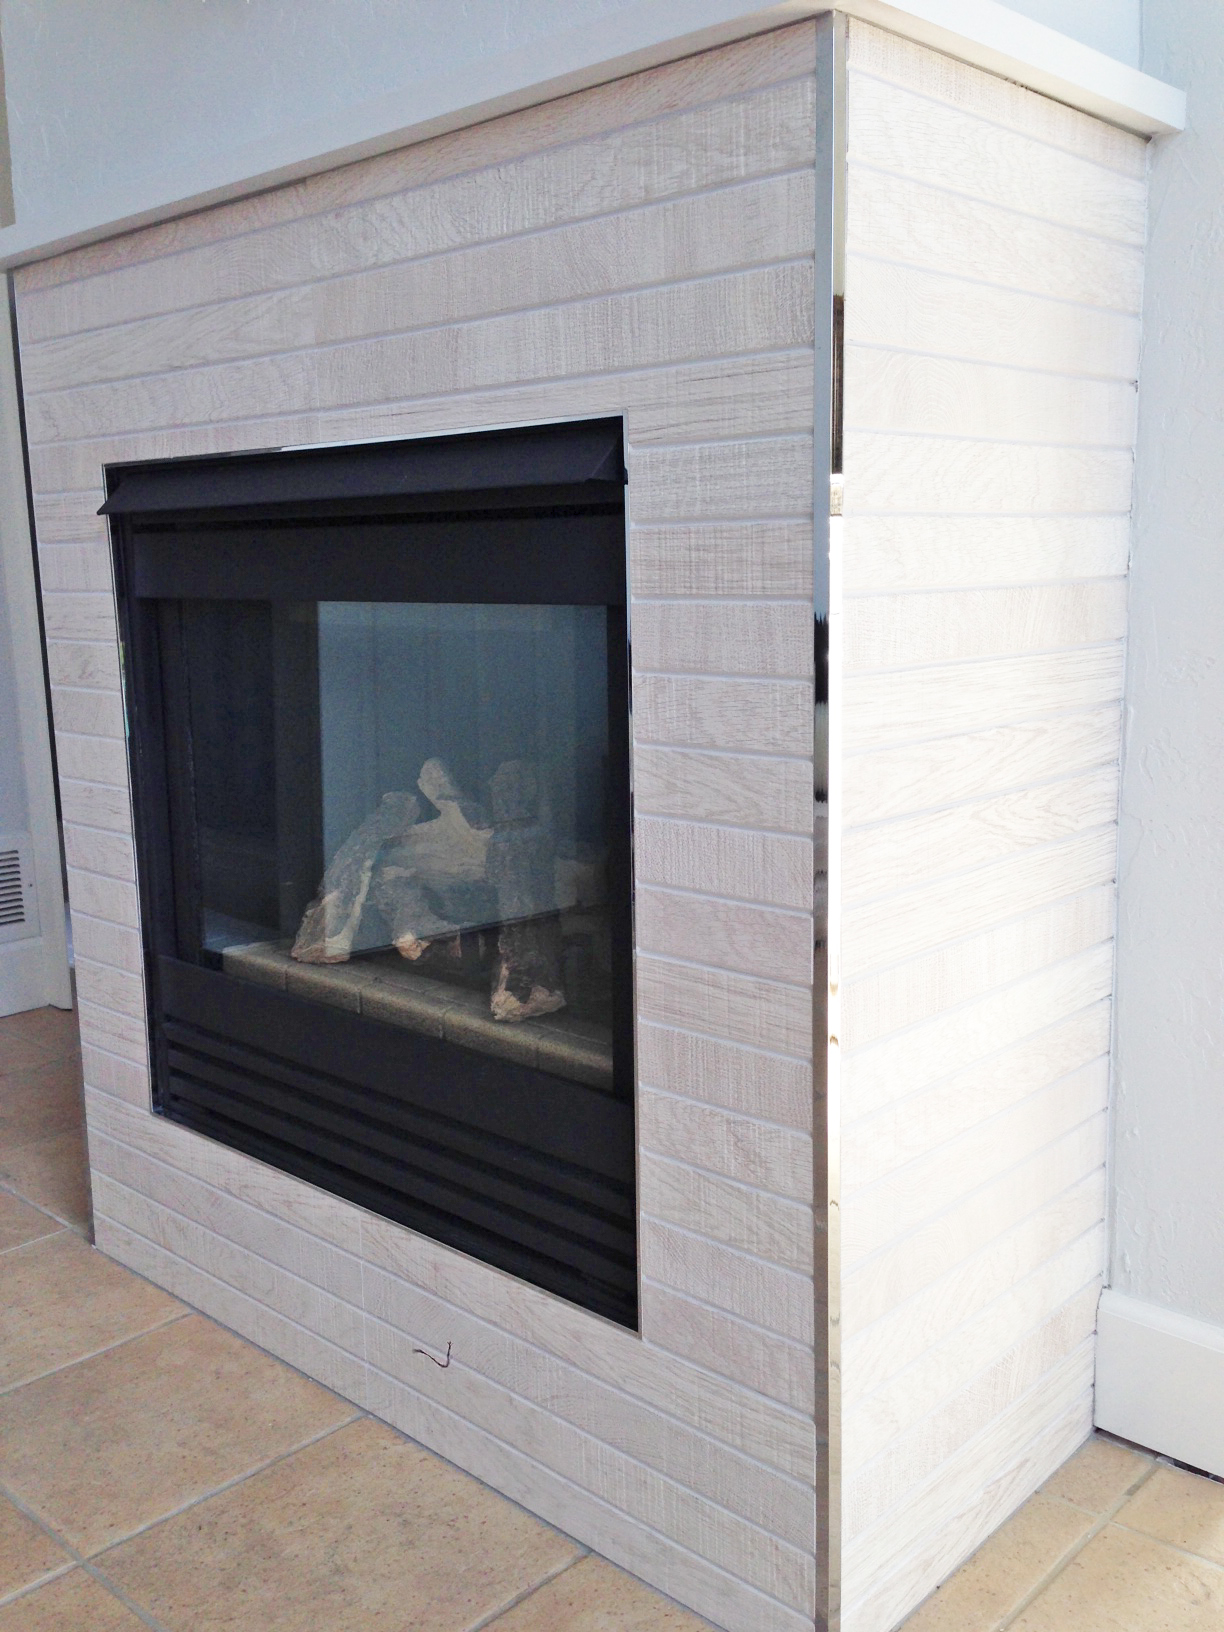 I updated the fireplace with the same tile we used for wainscot in the bathroom.  Both vertical corners are adorned with Porcelanosa corner trim in polished chrome.